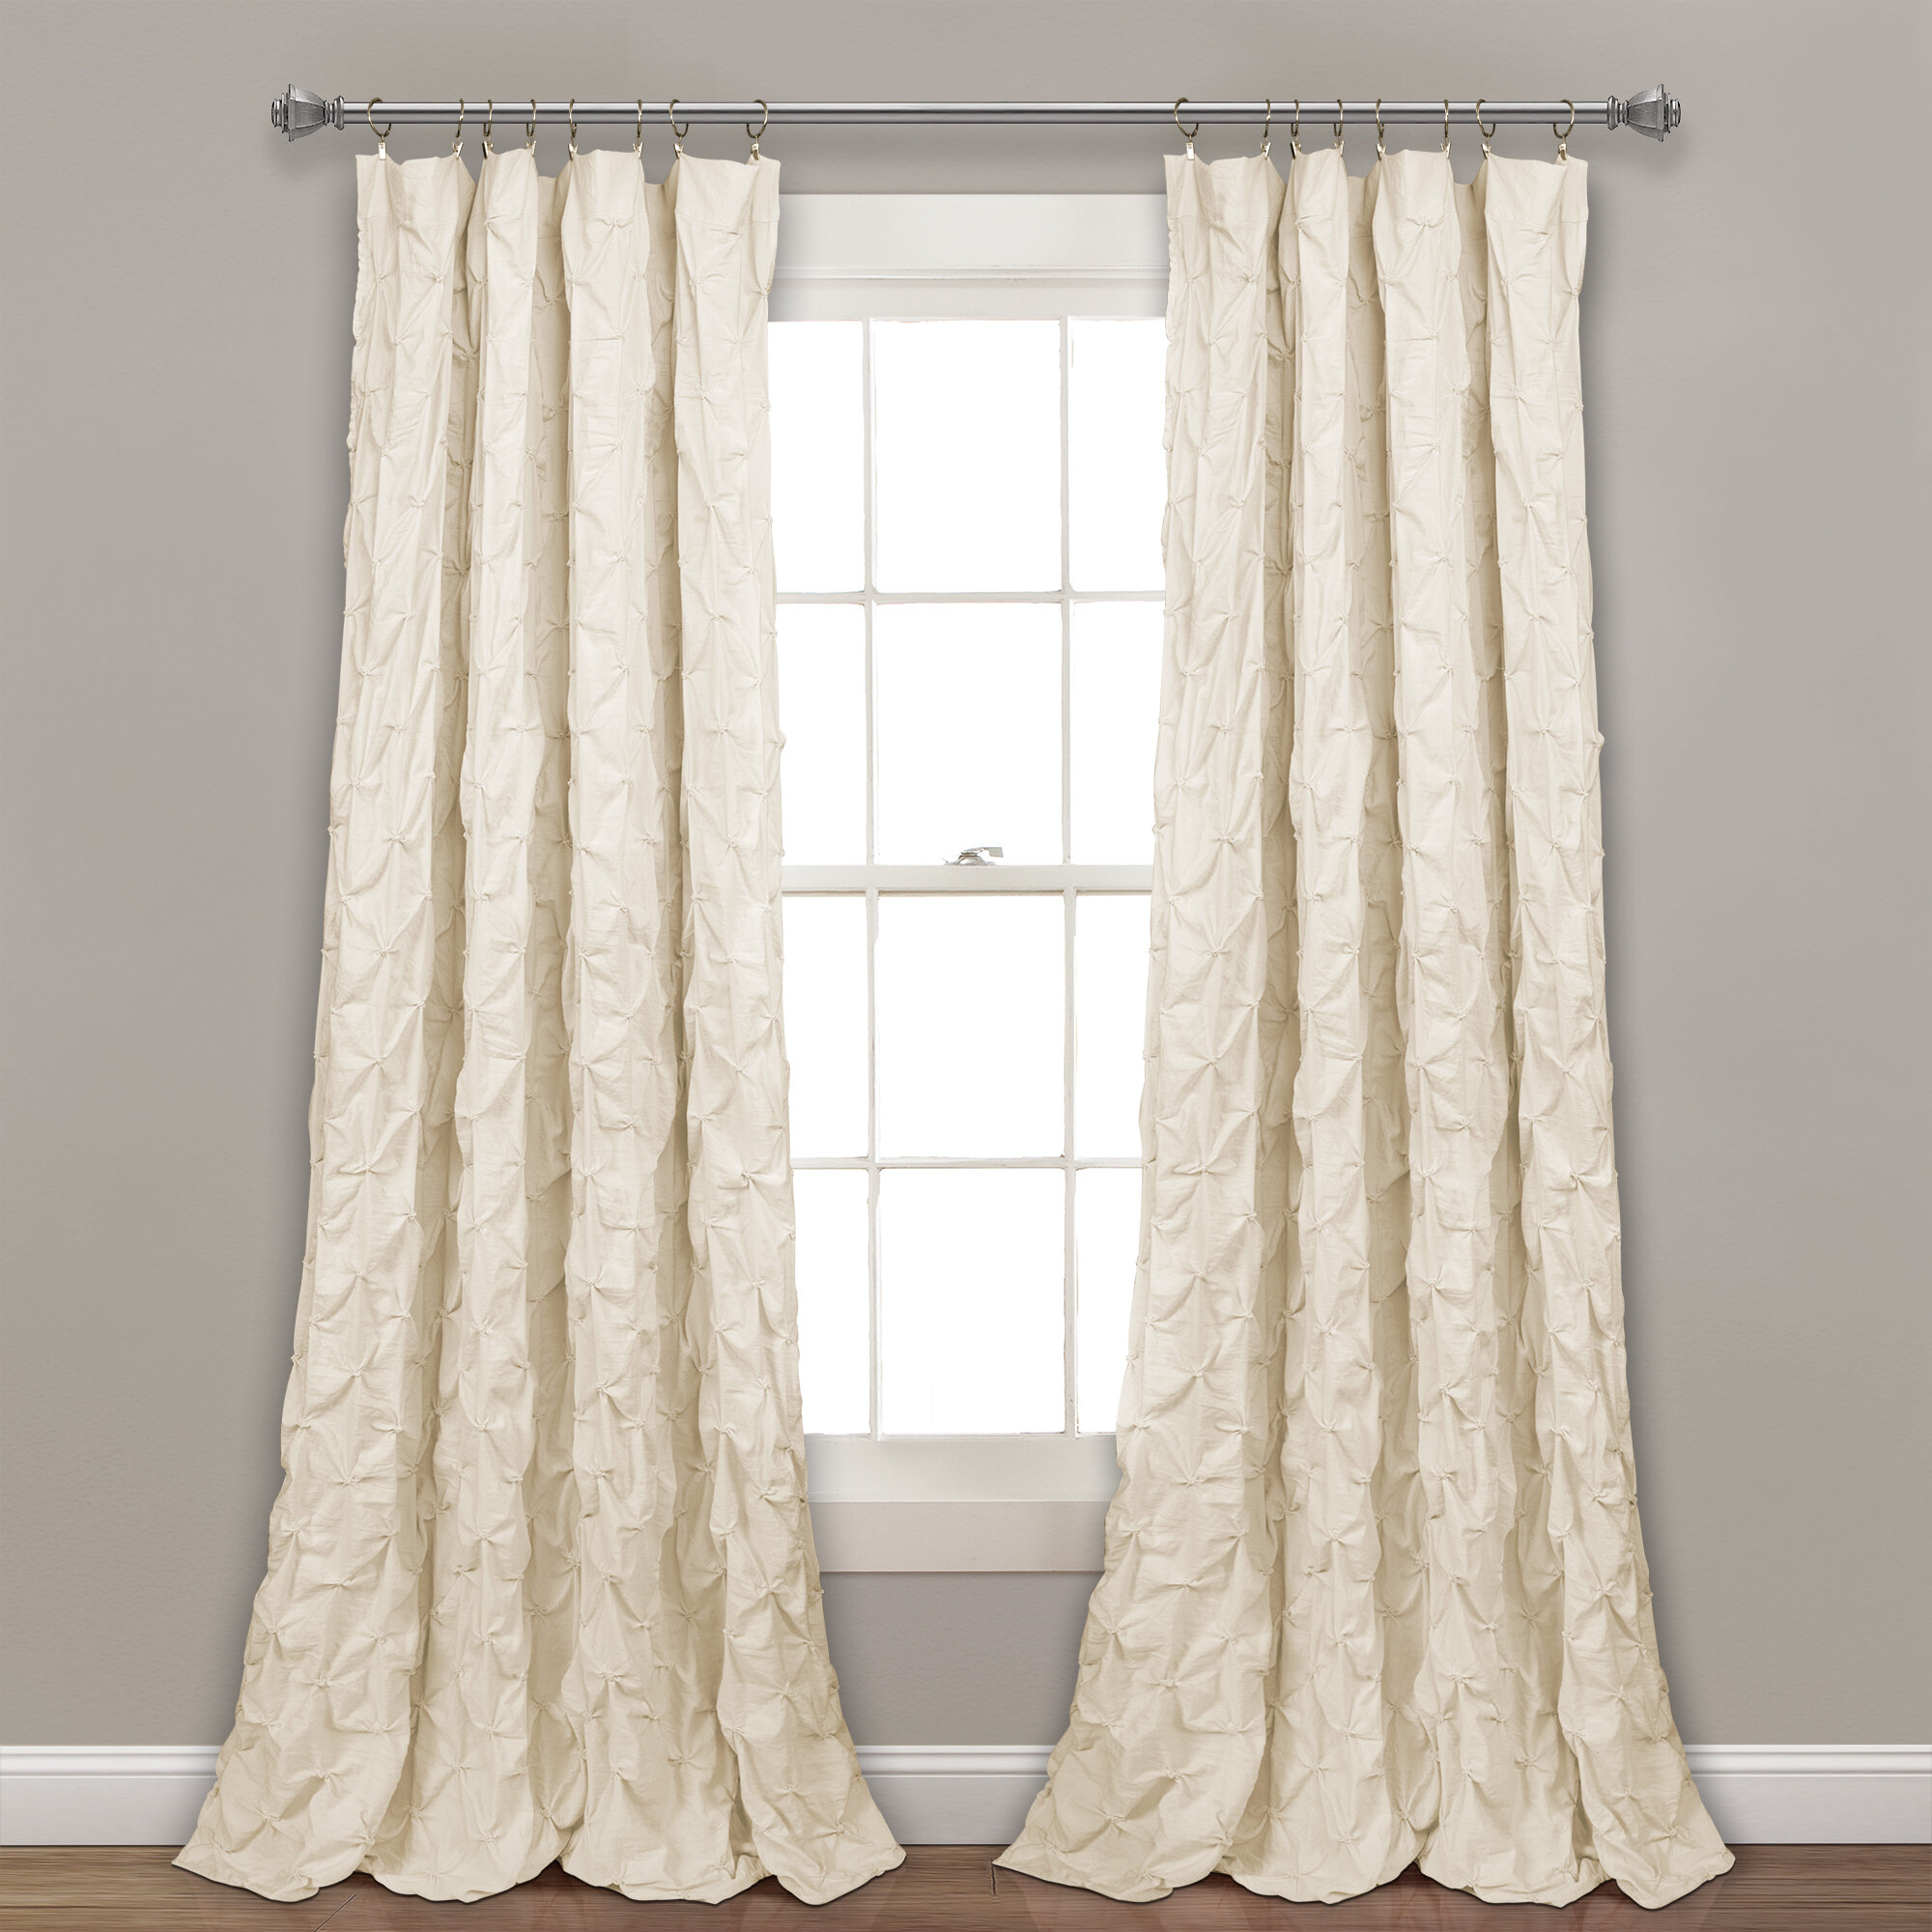 Ornelas Pintuck Solid Sheer Rod Pocket Single Curtain Panel Intended For Ruffle Diamond Curtain Panel Pairs (View 19 of 20)